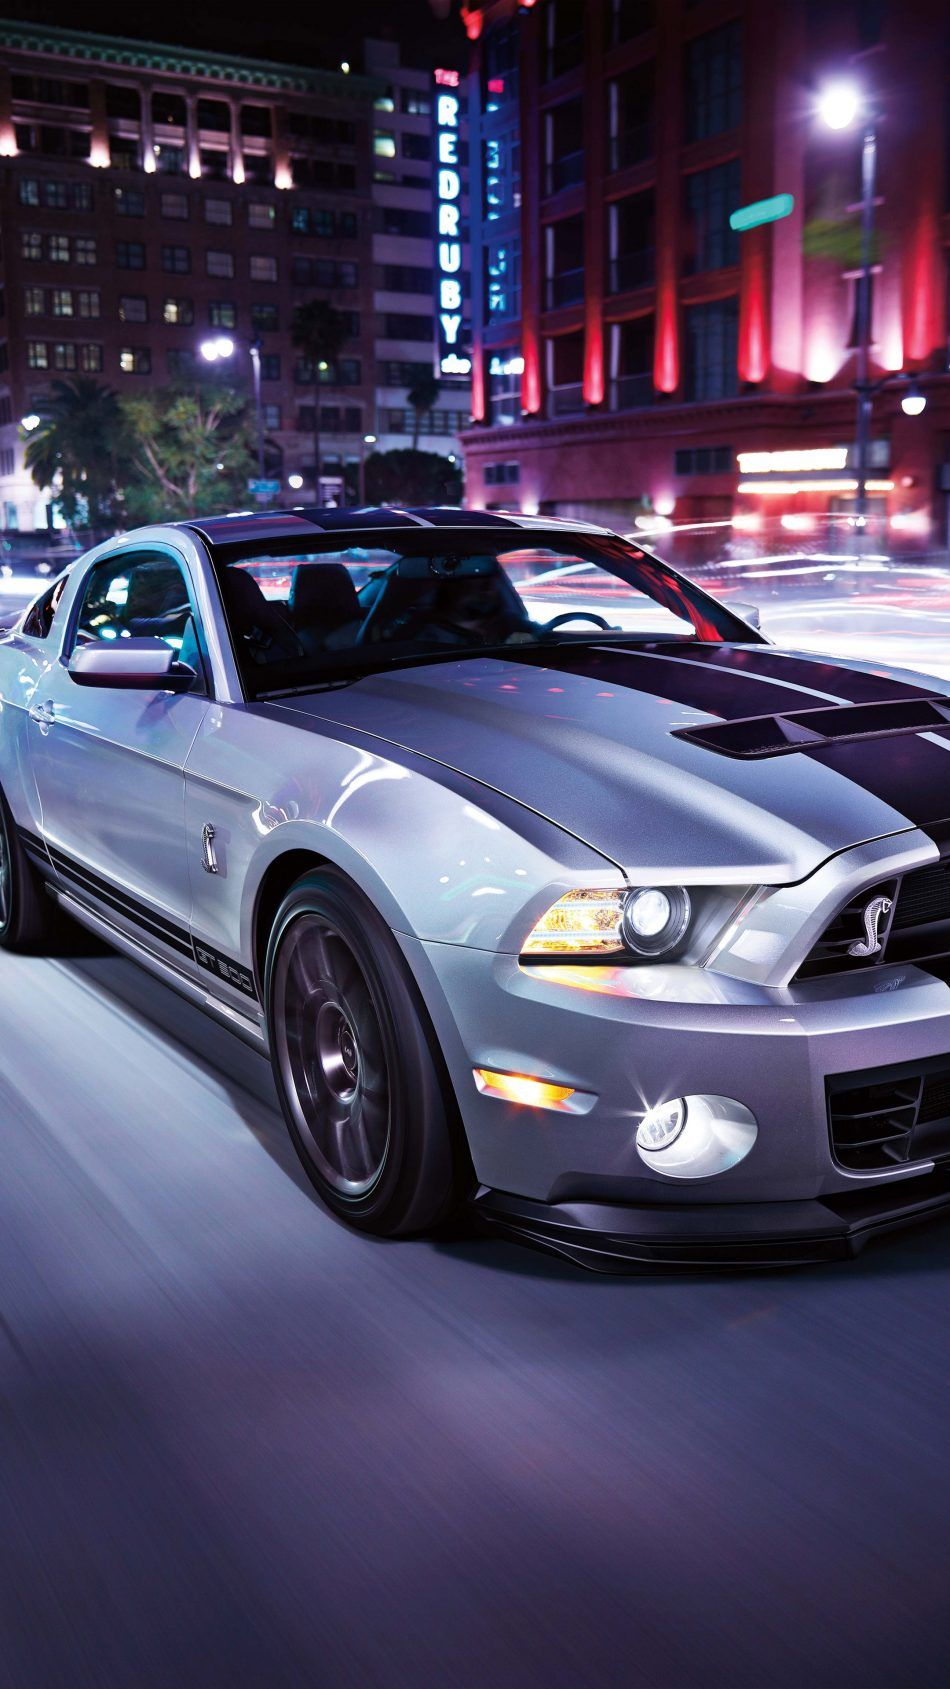 Ford Mustang Night Street Car Wallpapers Cars Mustang Mustang Cars